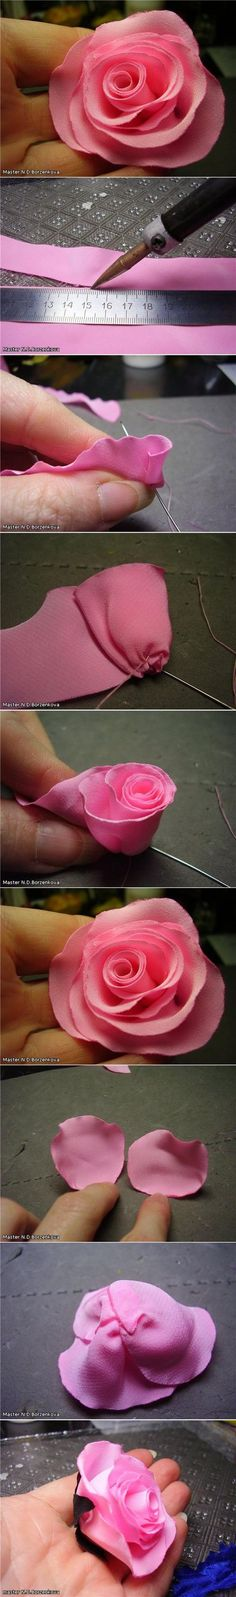 DIY Pretty Fabric Rose DIY Projects / UsefulDIY.com